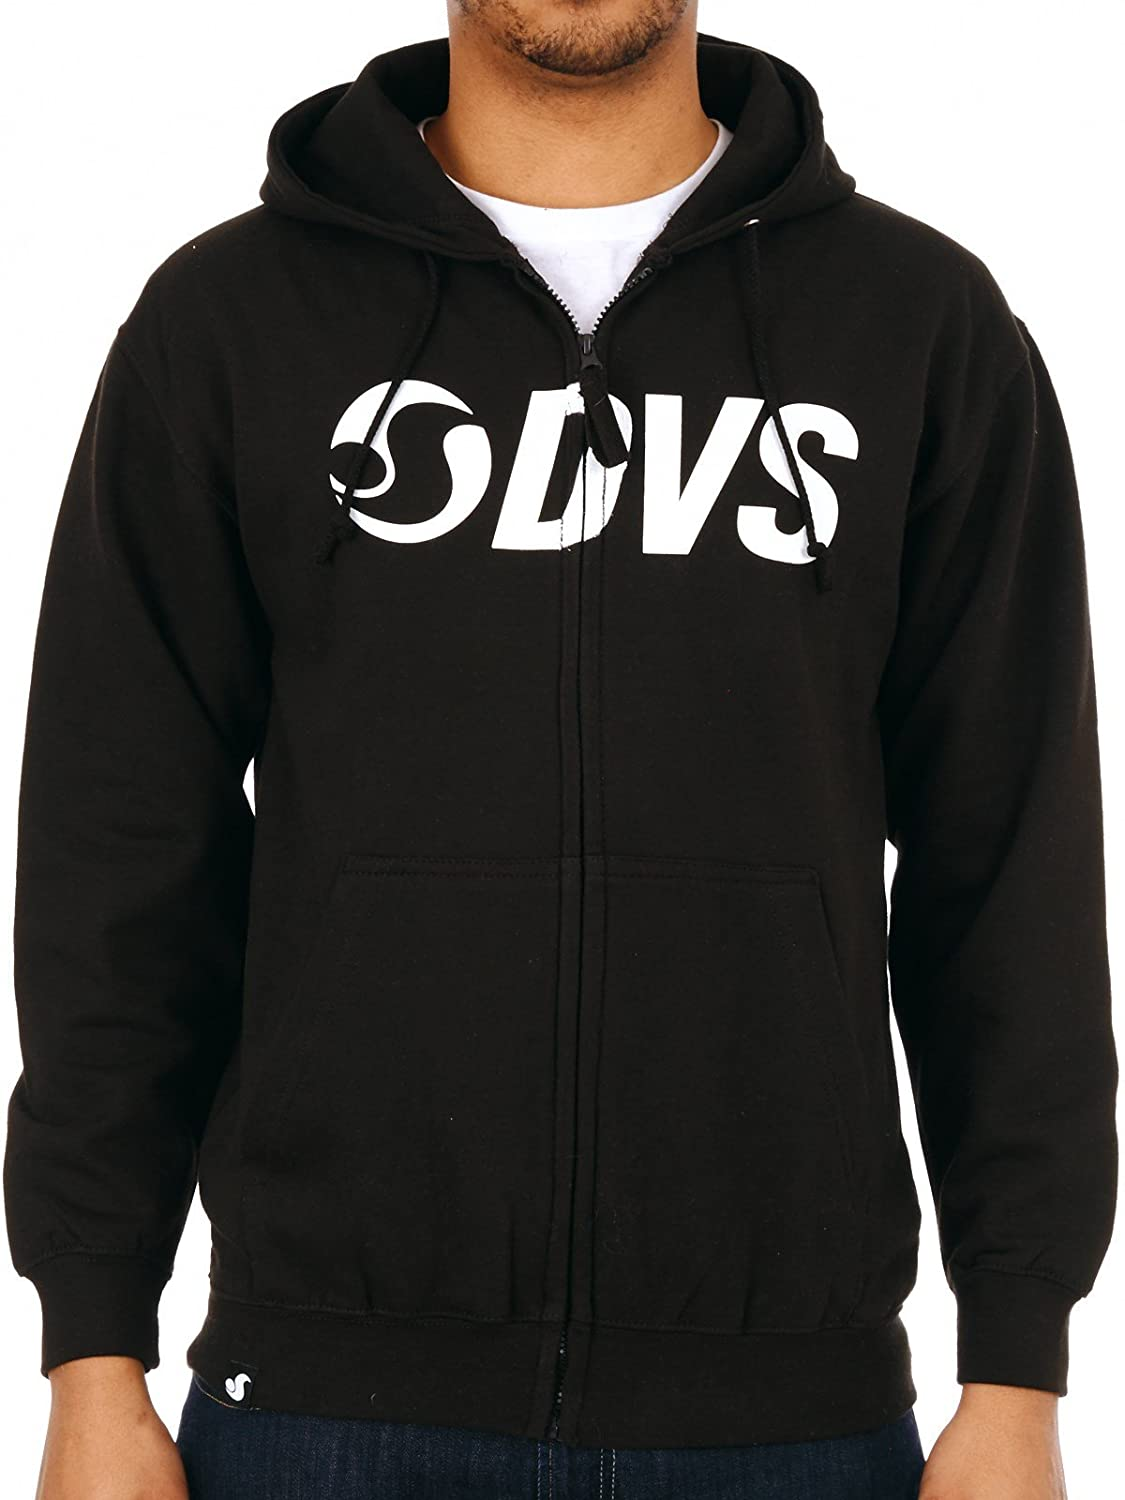 DVS Schuhes Sweatshirt  Action Screen Zip BK